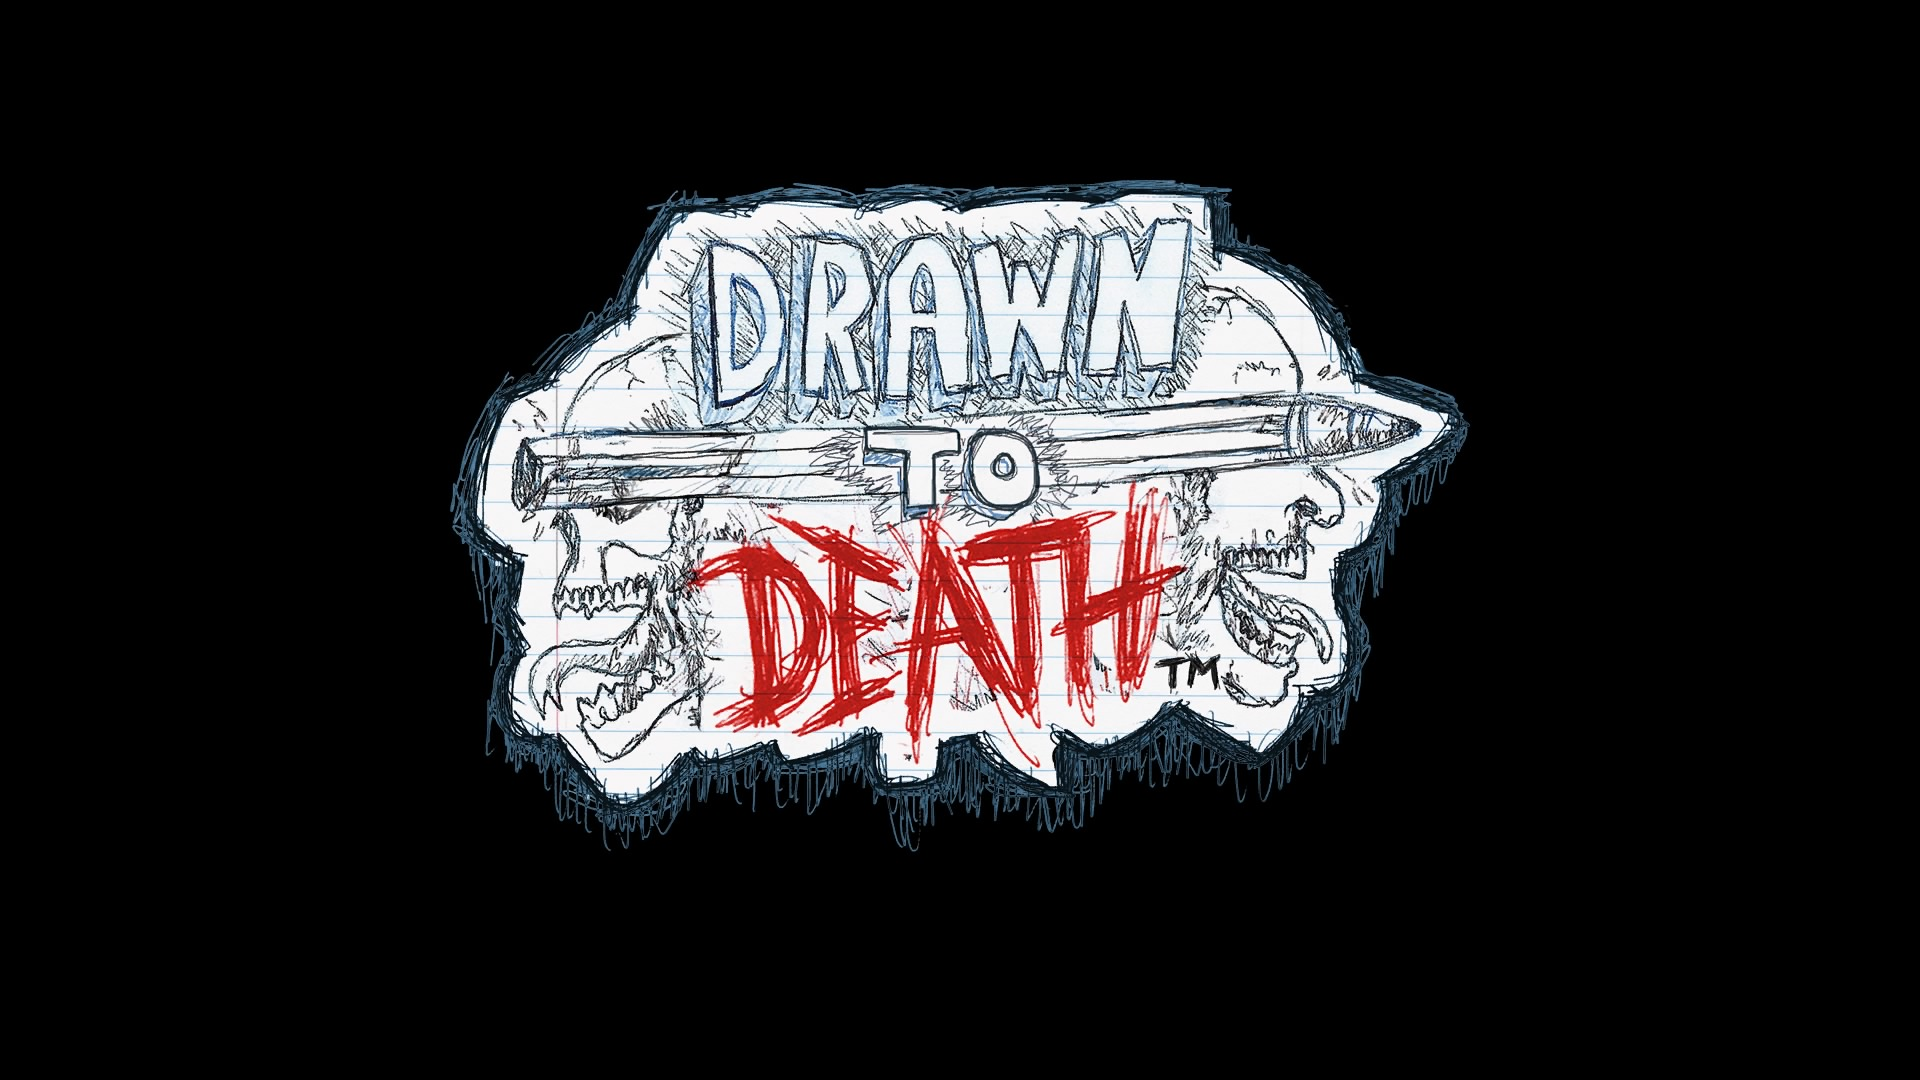 Drawn to Death™_20170727160118